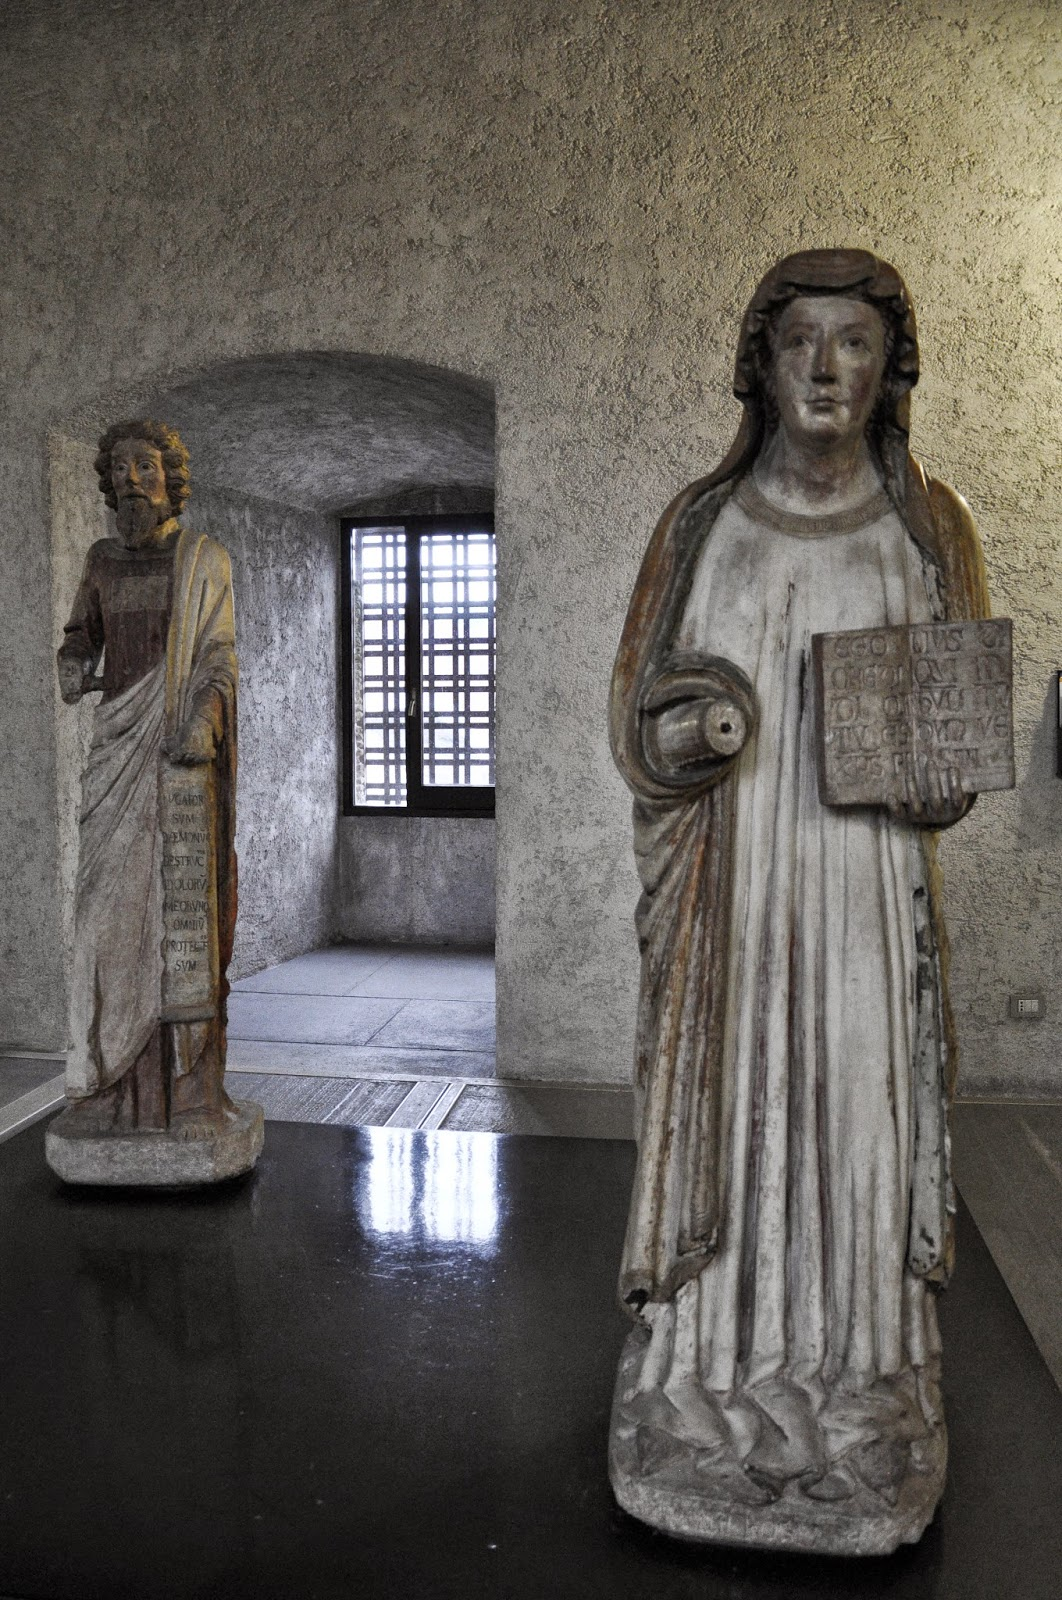 Medieval statues in the Museum of Castelvecchio in Verona